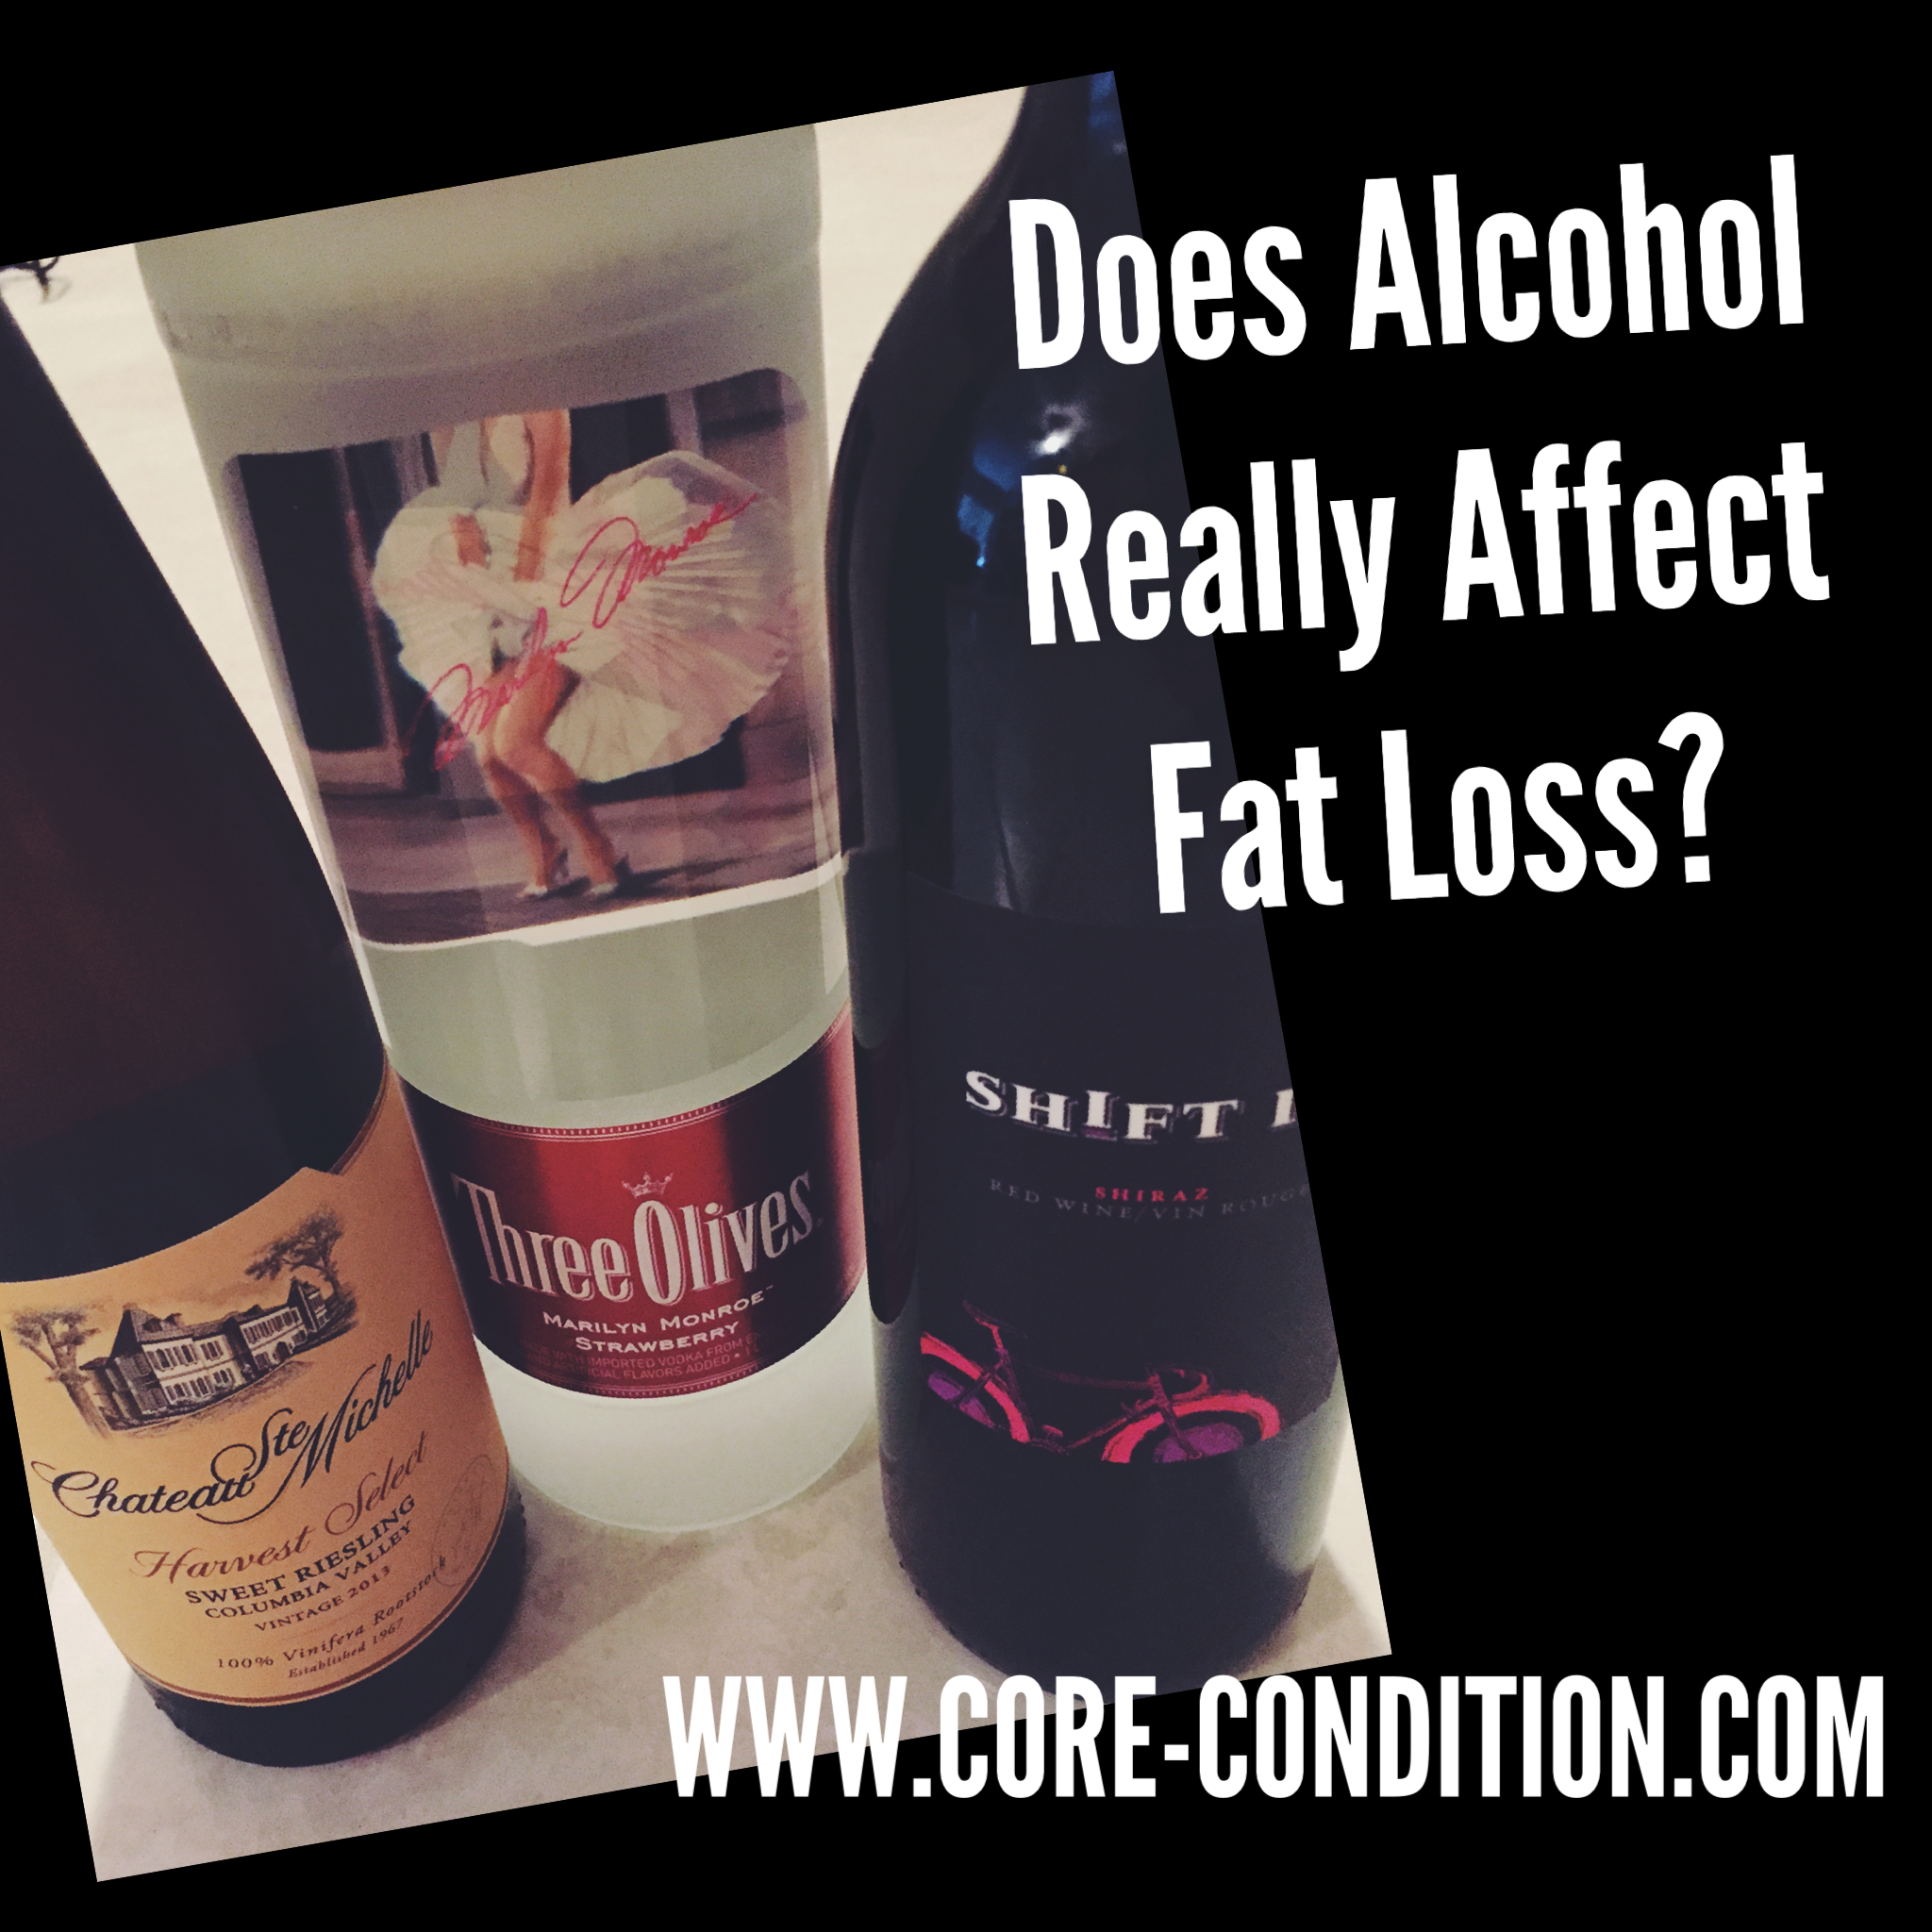 Does Alcohol Really Affect Fat Loss?